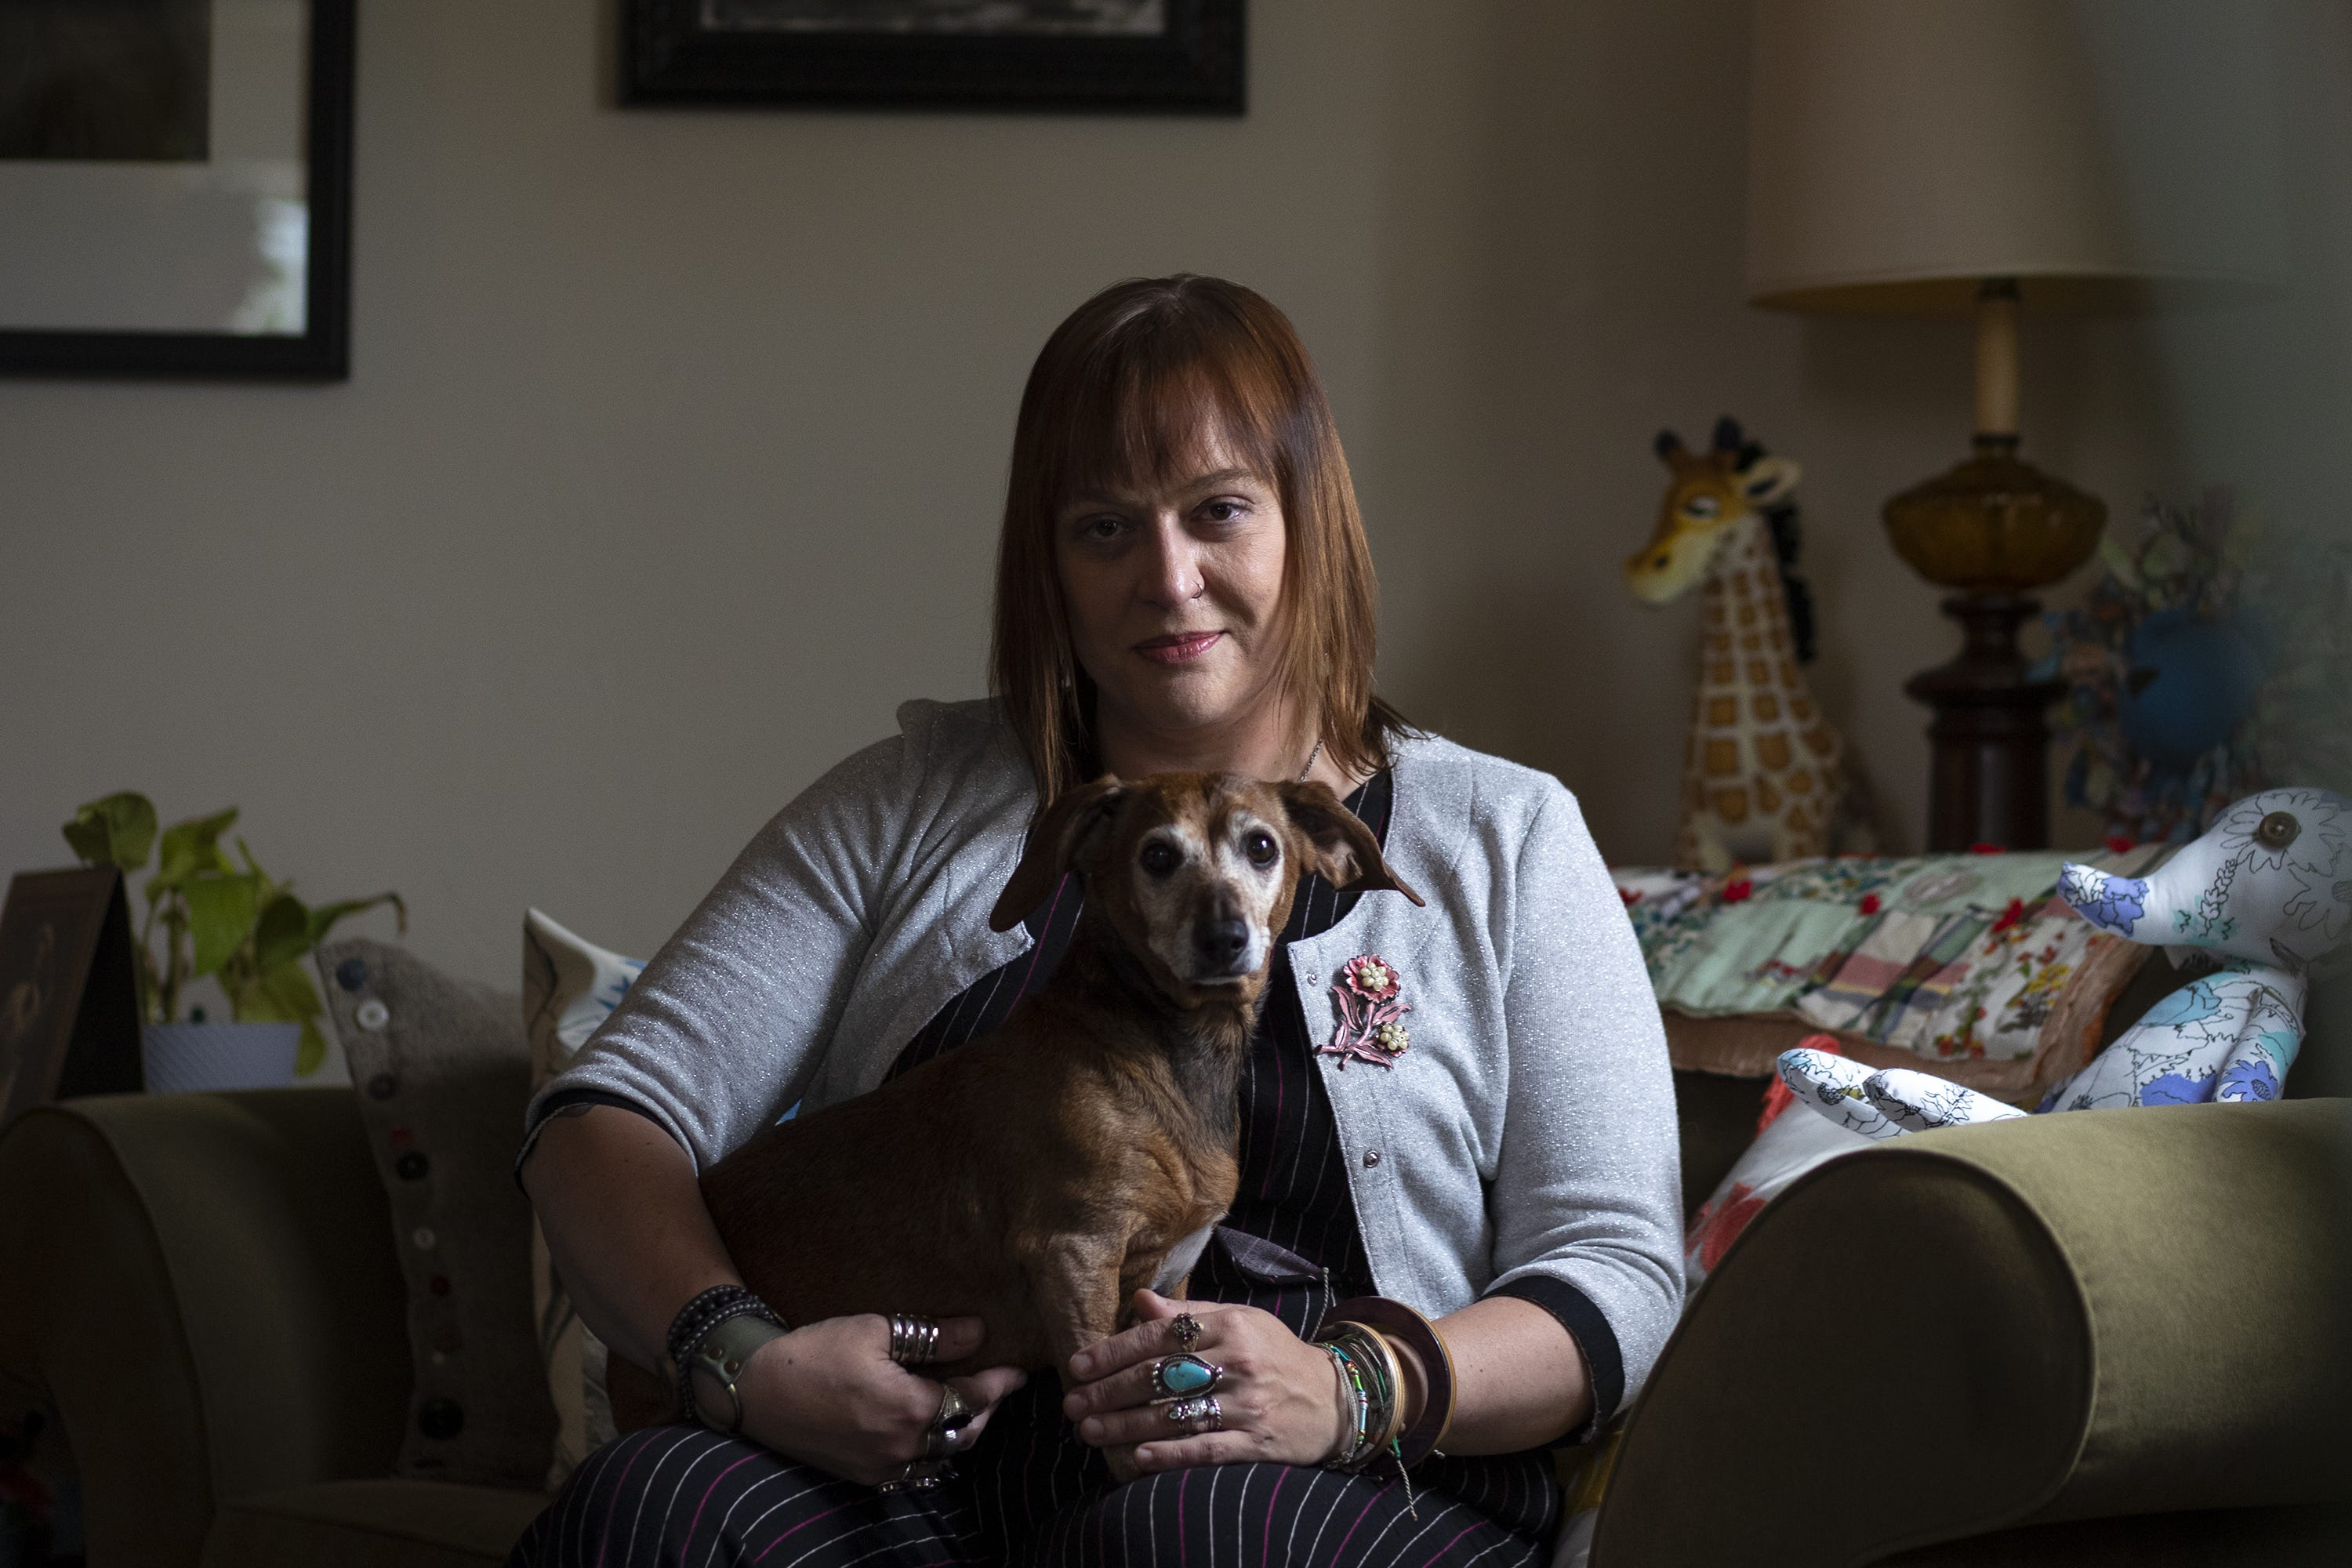 Stacey Burkhart, head of SAGE Green Bay, and business owner of Eight Trees poses for a portrait with her dog Daisy in her apartment, Thursday, May 27, 2021, Pulaski, Wis. Samantha Madar/USA TODAY NETWORK-Wisconsin